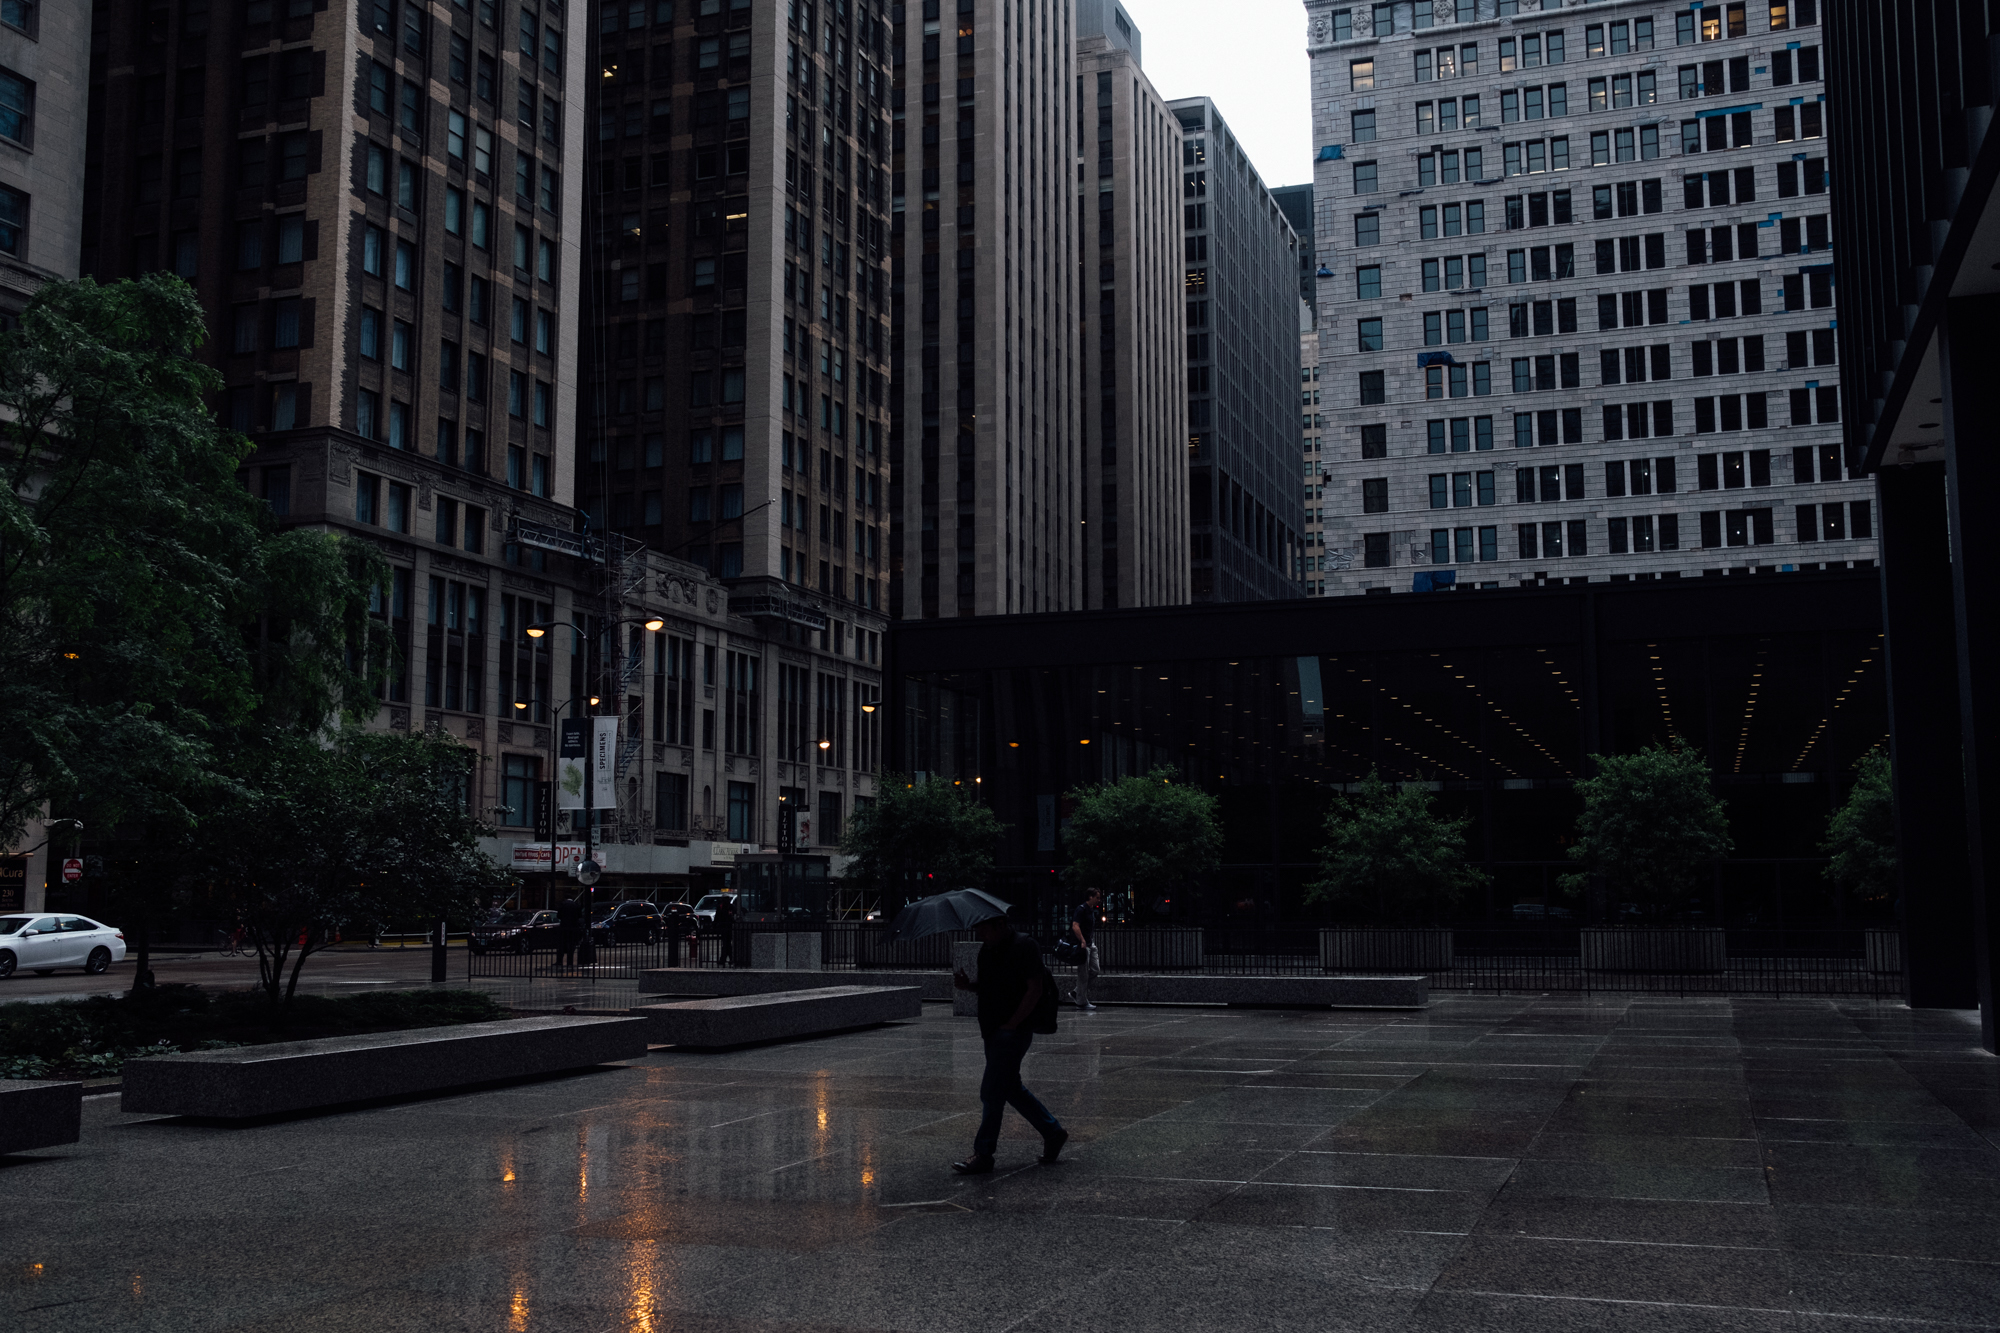 streeterville and chicago (12 of 46).jpg